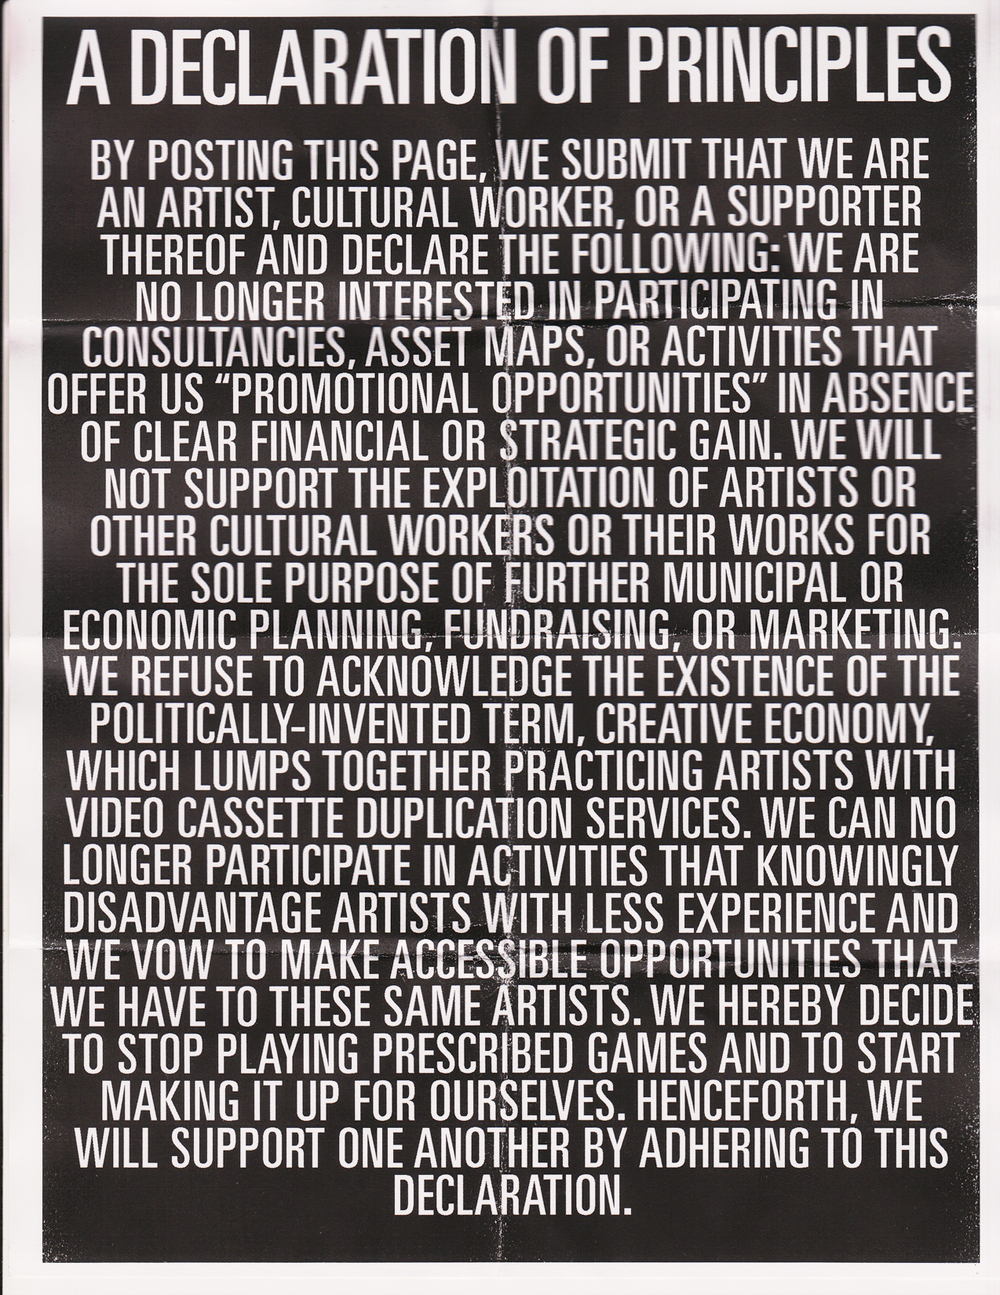 A Declaration of Principles from Broken City Lab. http://www.brokencitylab.org/blog/towards-a-new-collectivity-a-declaration-of-principles-for-artists-cultural-workers-supporters-thereof/